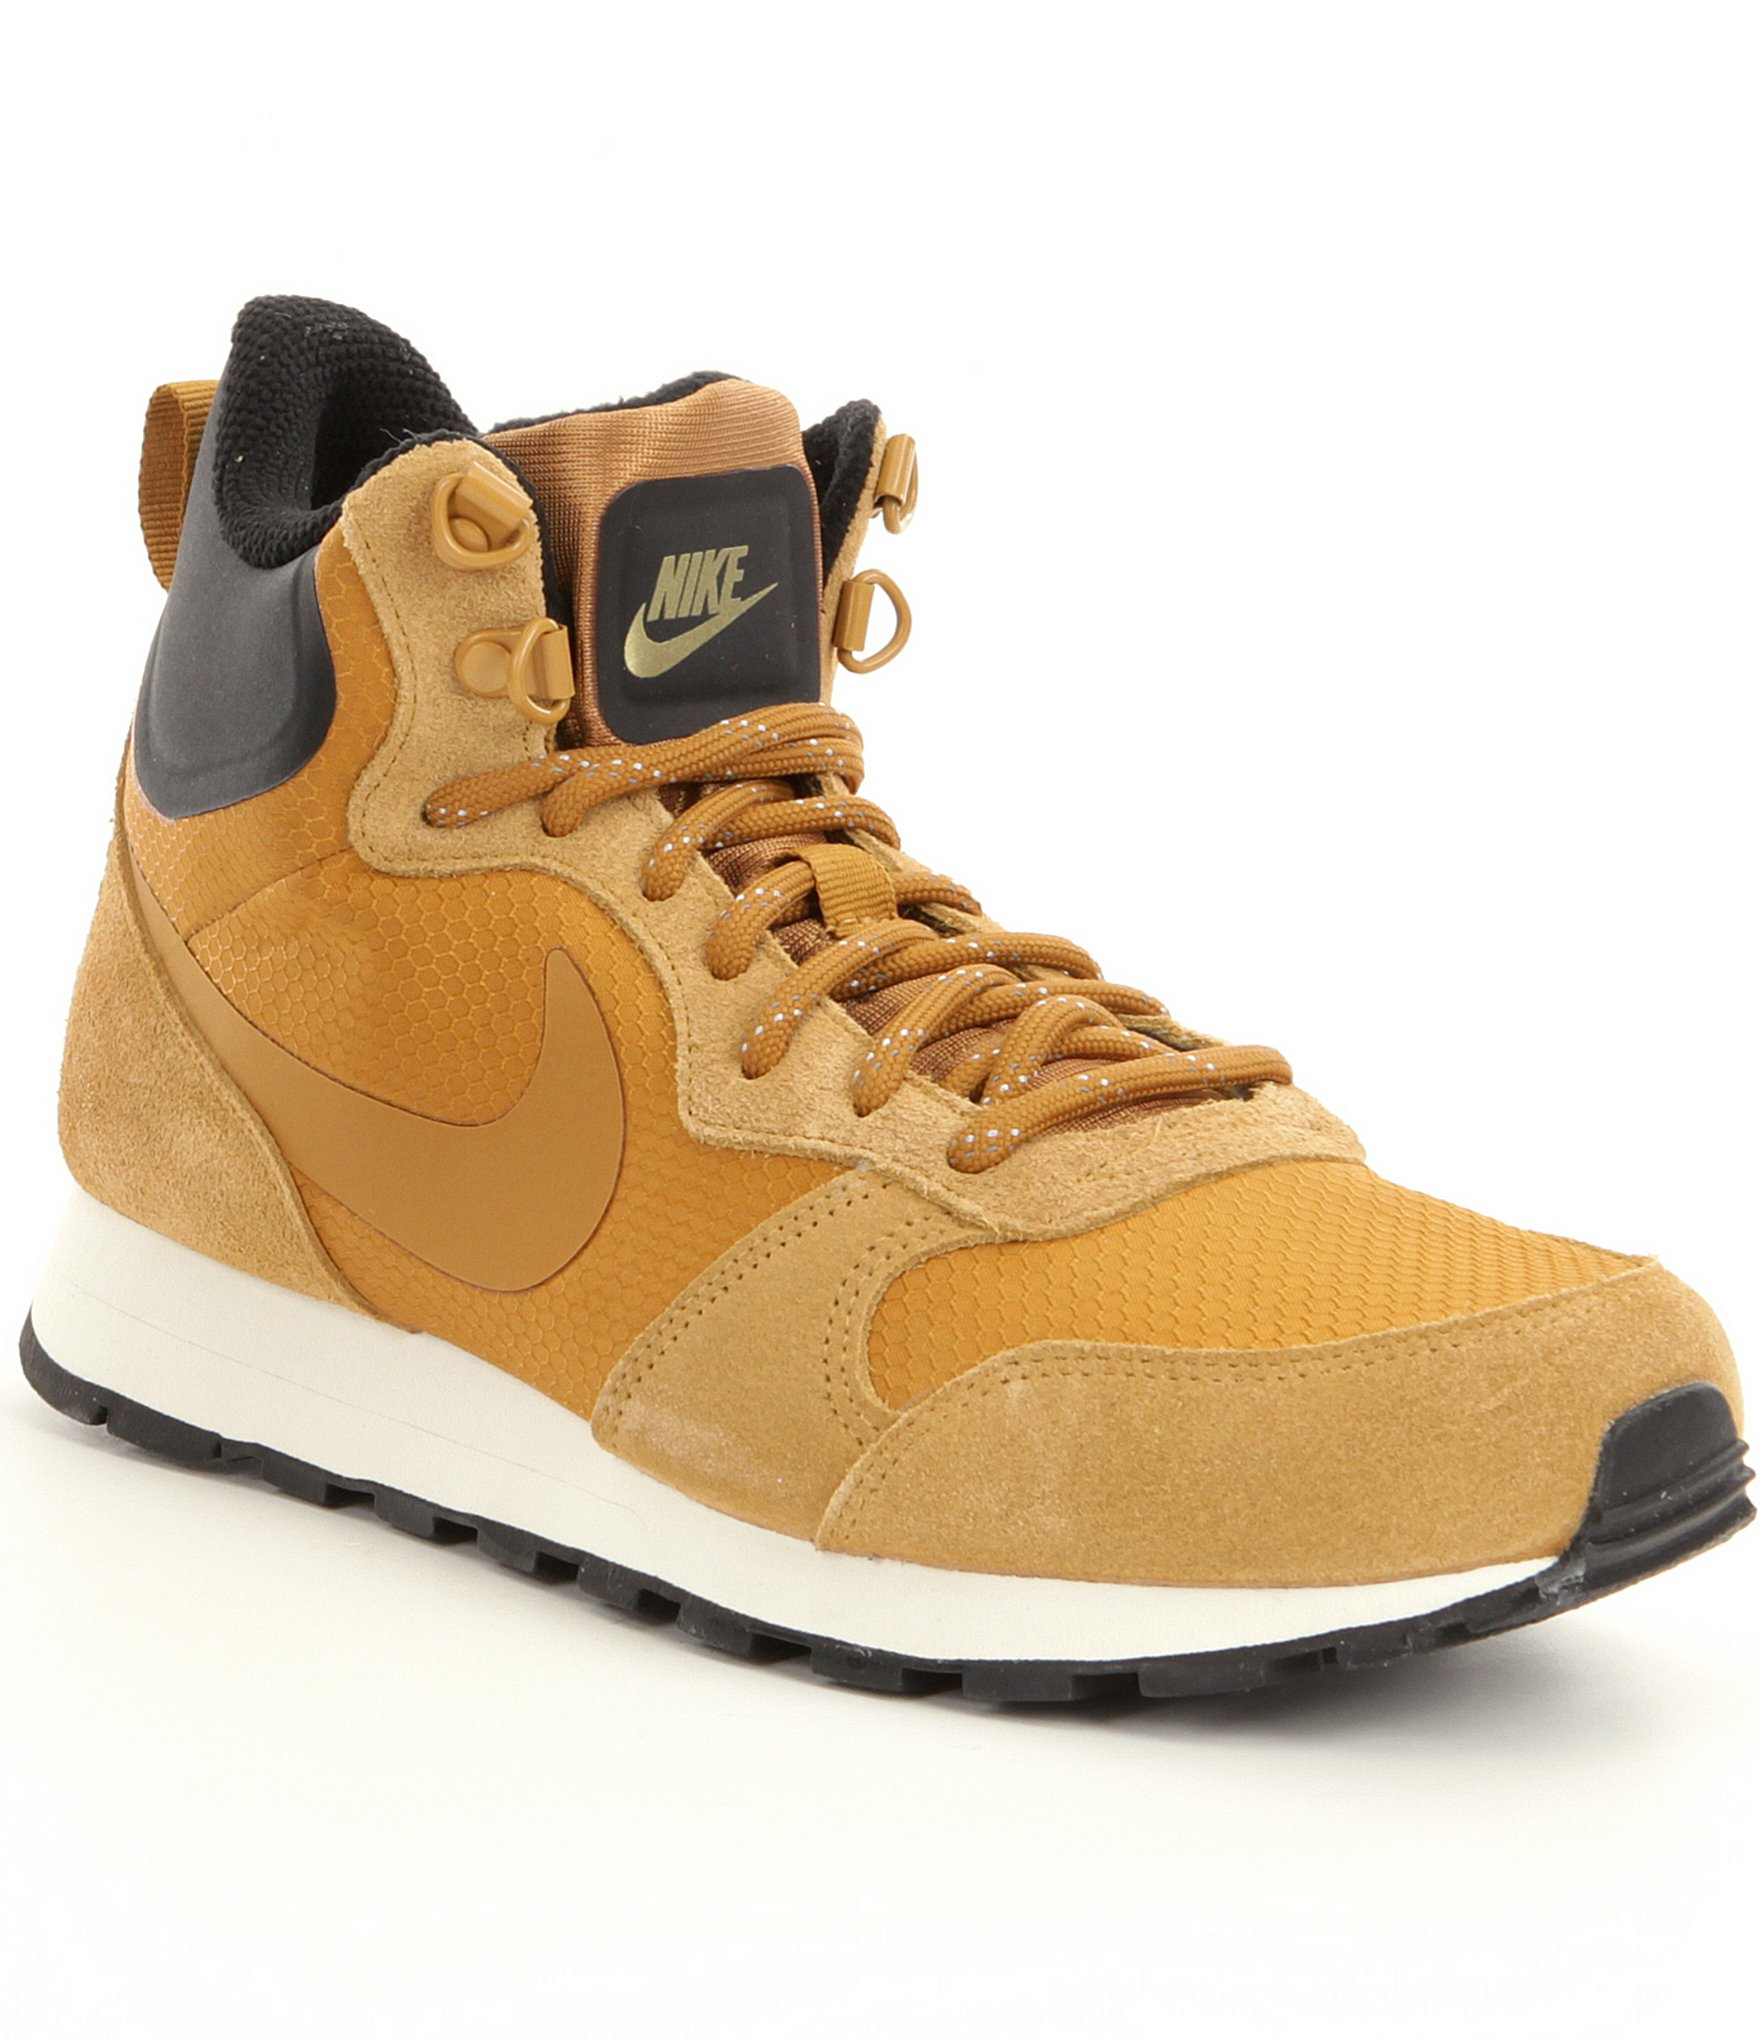 new arrival 25669 5867a Lyst - Nike Men ́s Md Runner 2 Mid Premium Lifestyle Shoes f